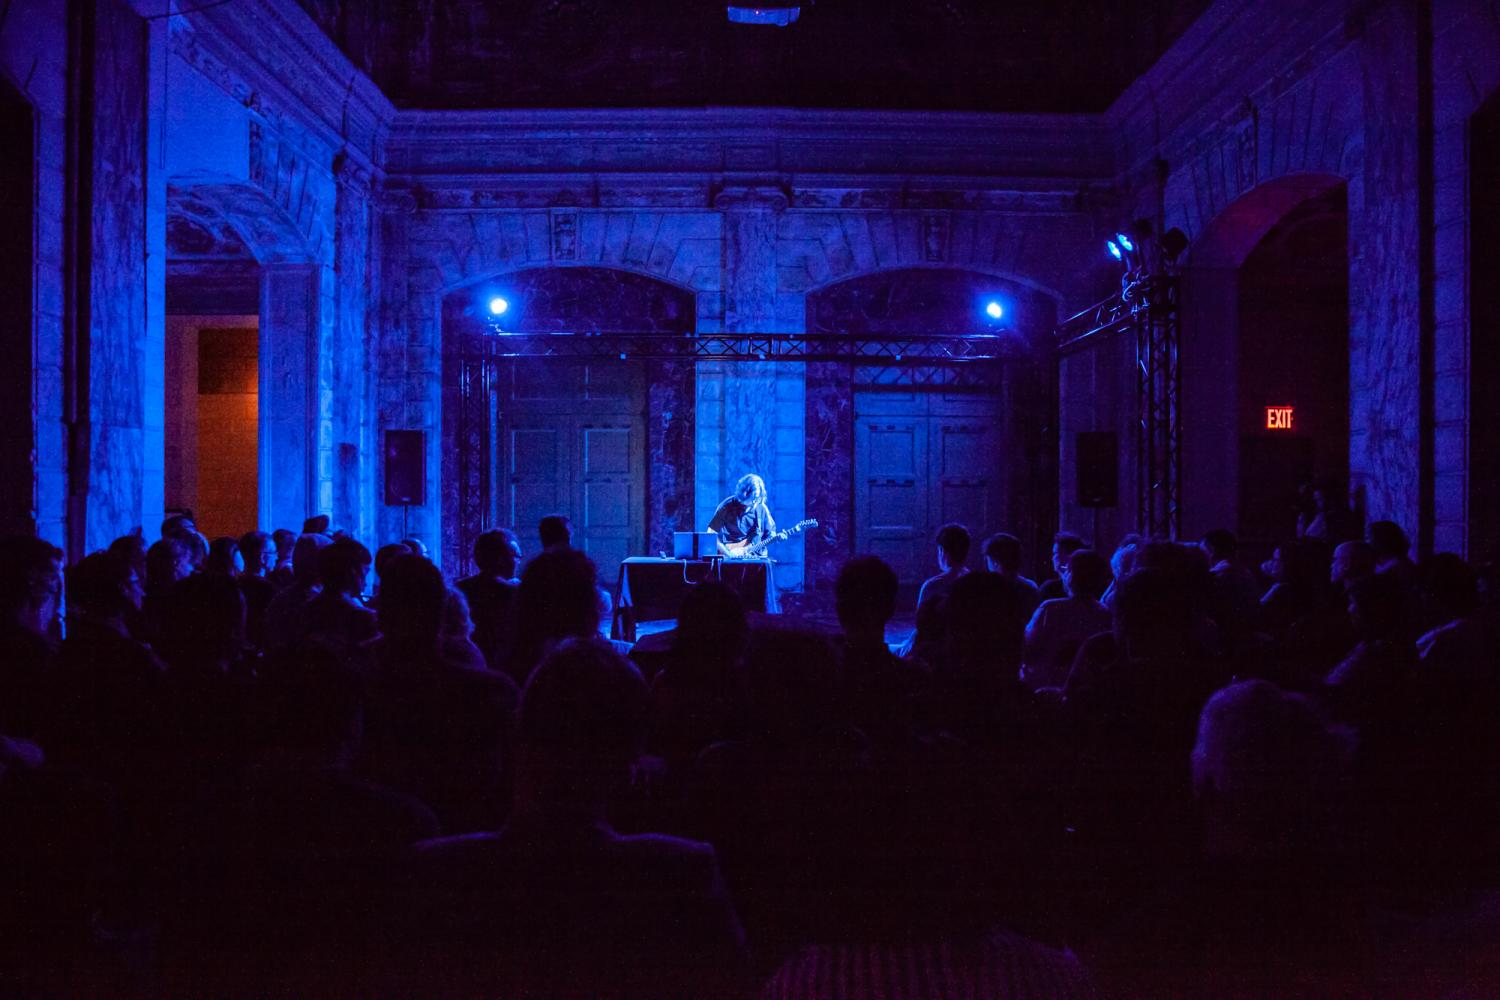 Michael Theodore plays electric guitar in a sold-out show at Issue Project Room in Brooklyn on June 26